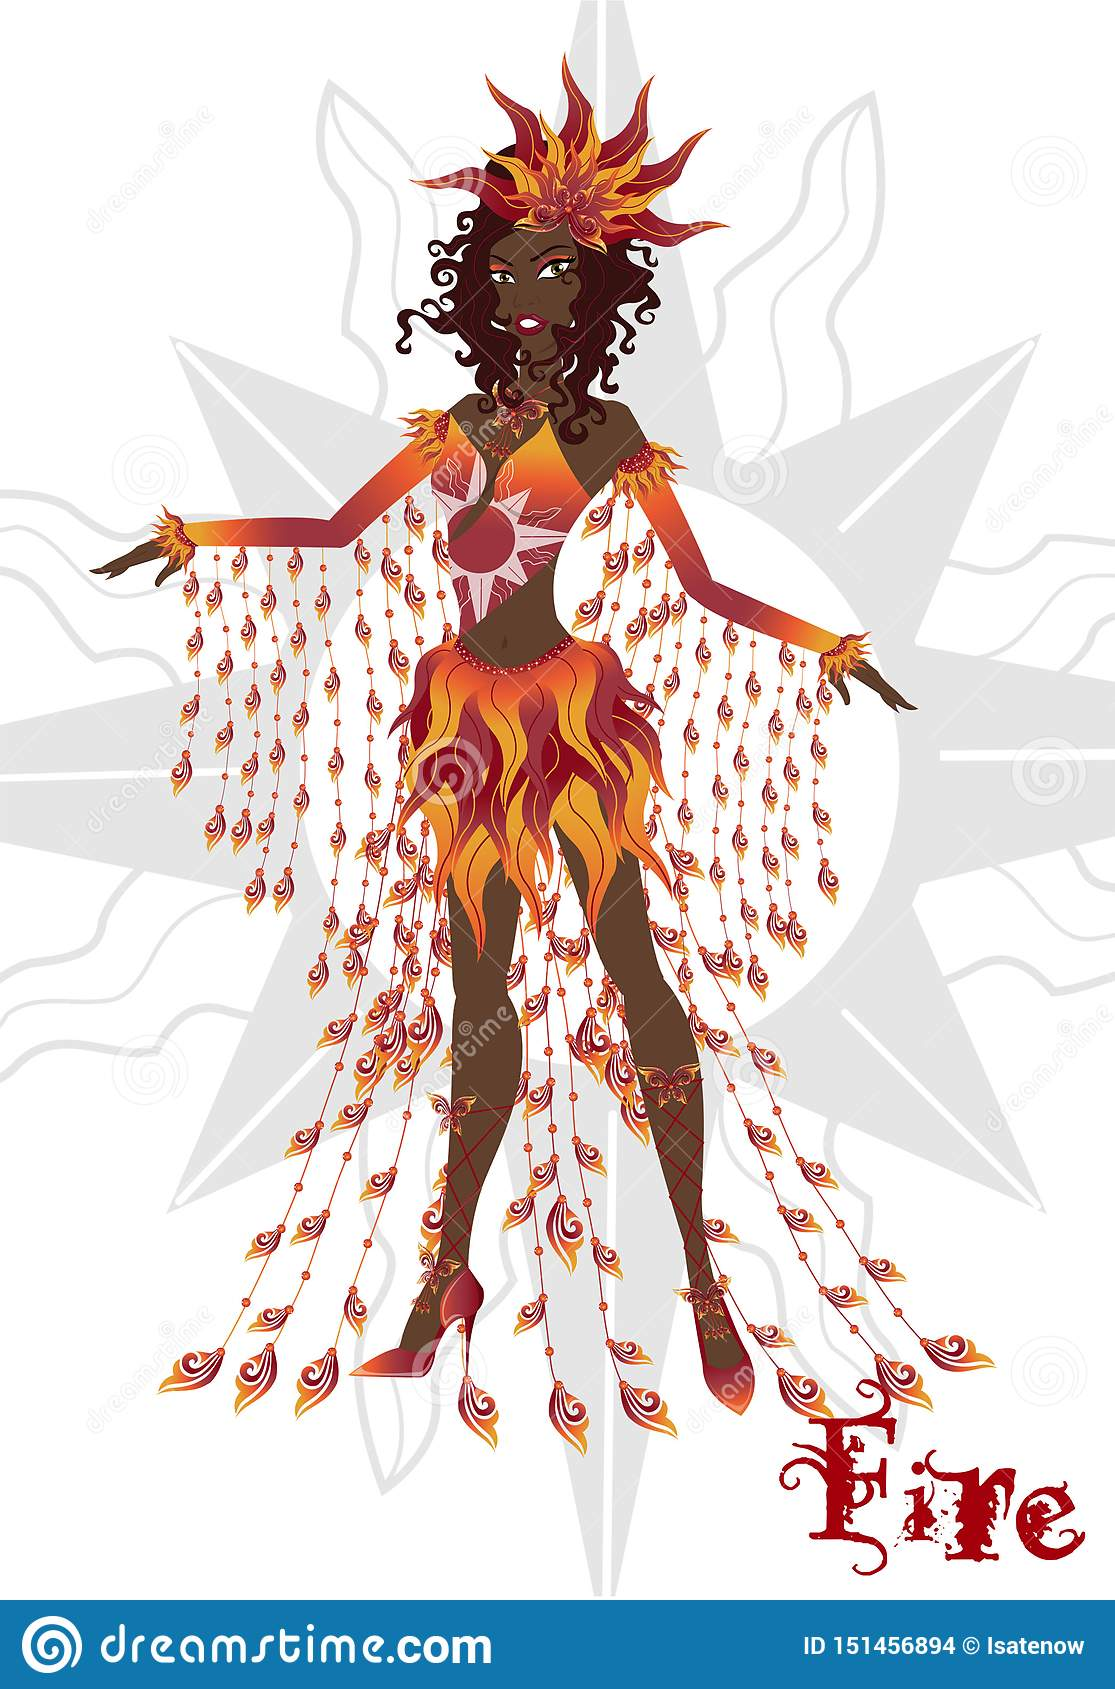 Girl in carnival dress, representing the fire element, articulated doll